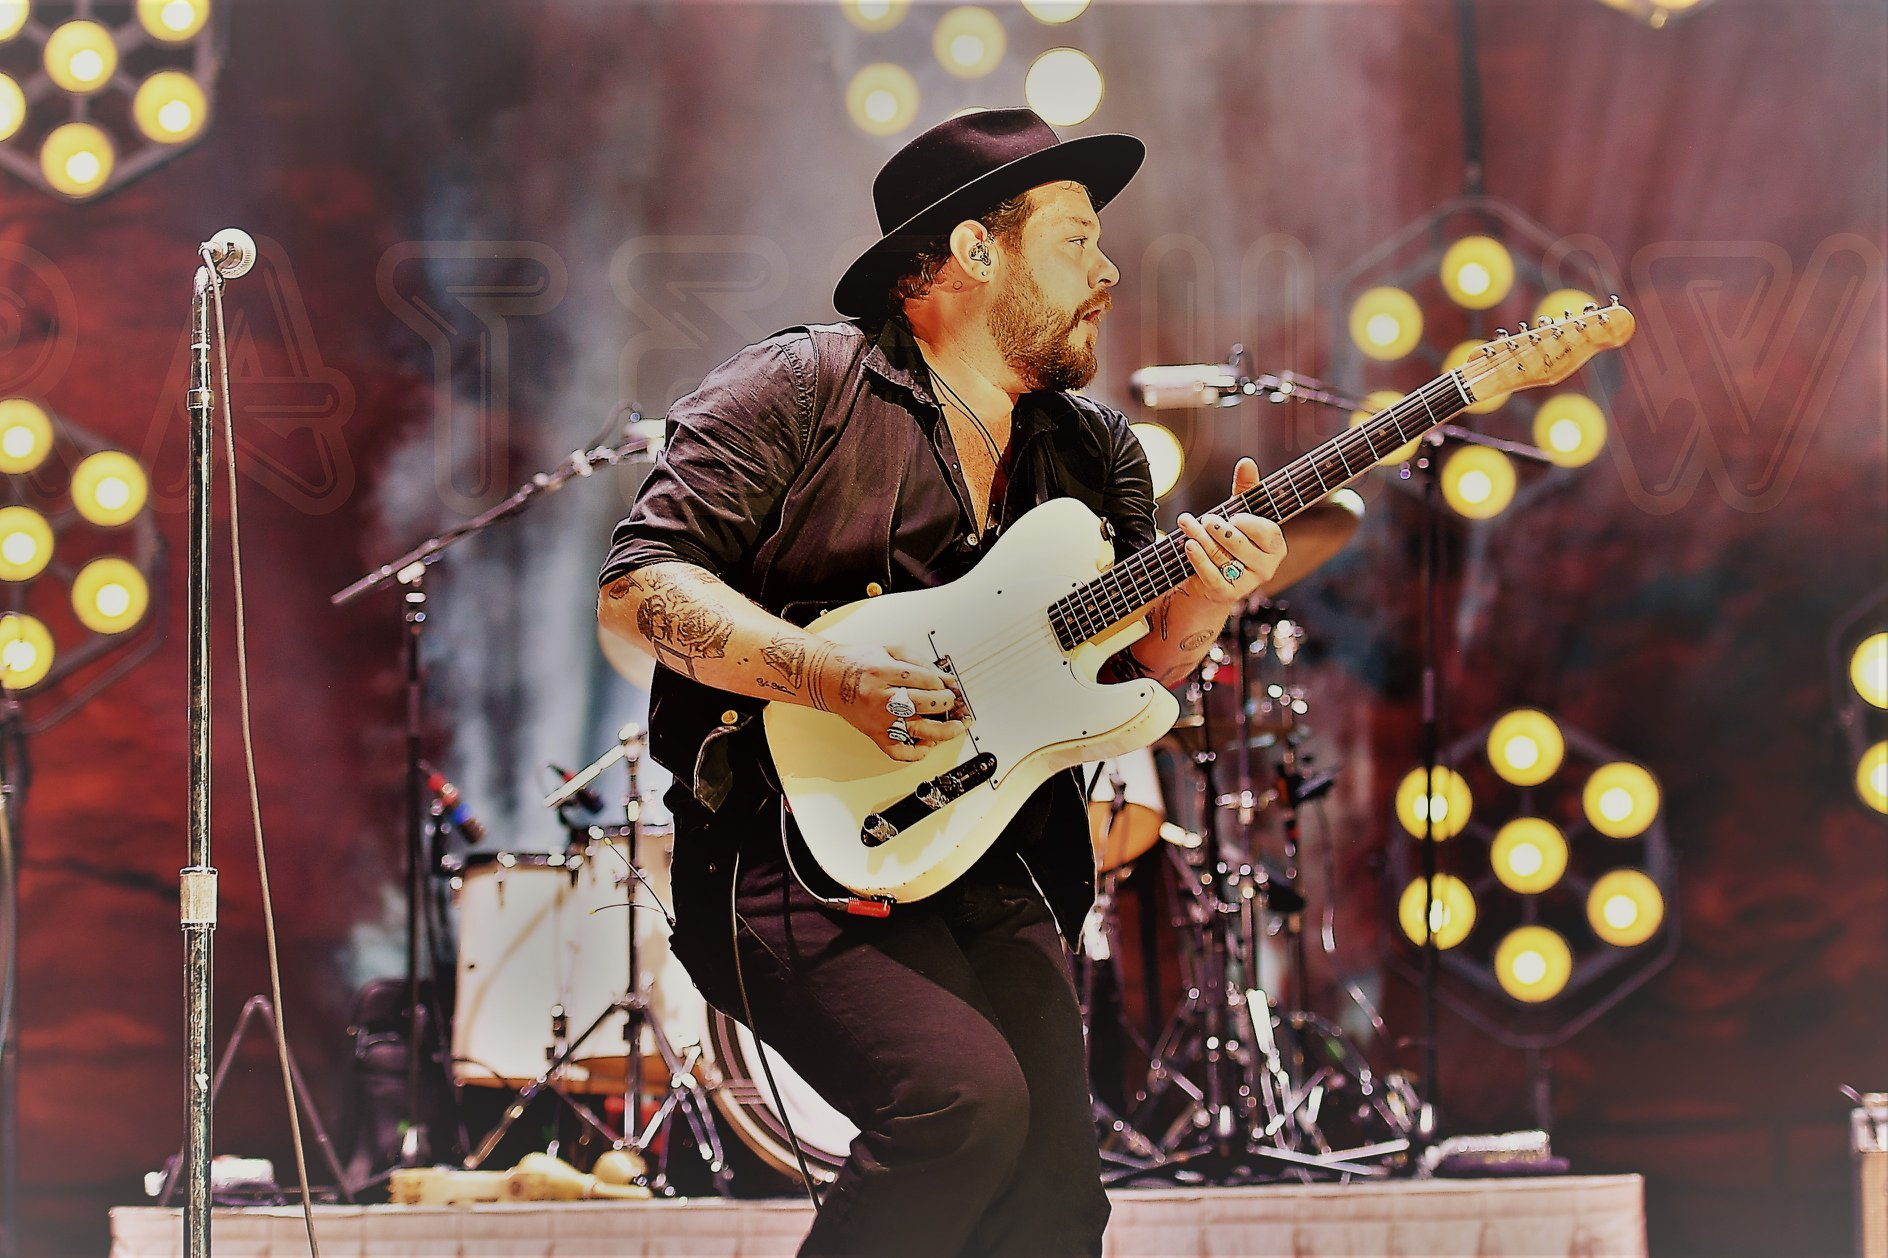 Nathaniel Rateliff confirms 2020 tour dates in support of forthcoming solo album